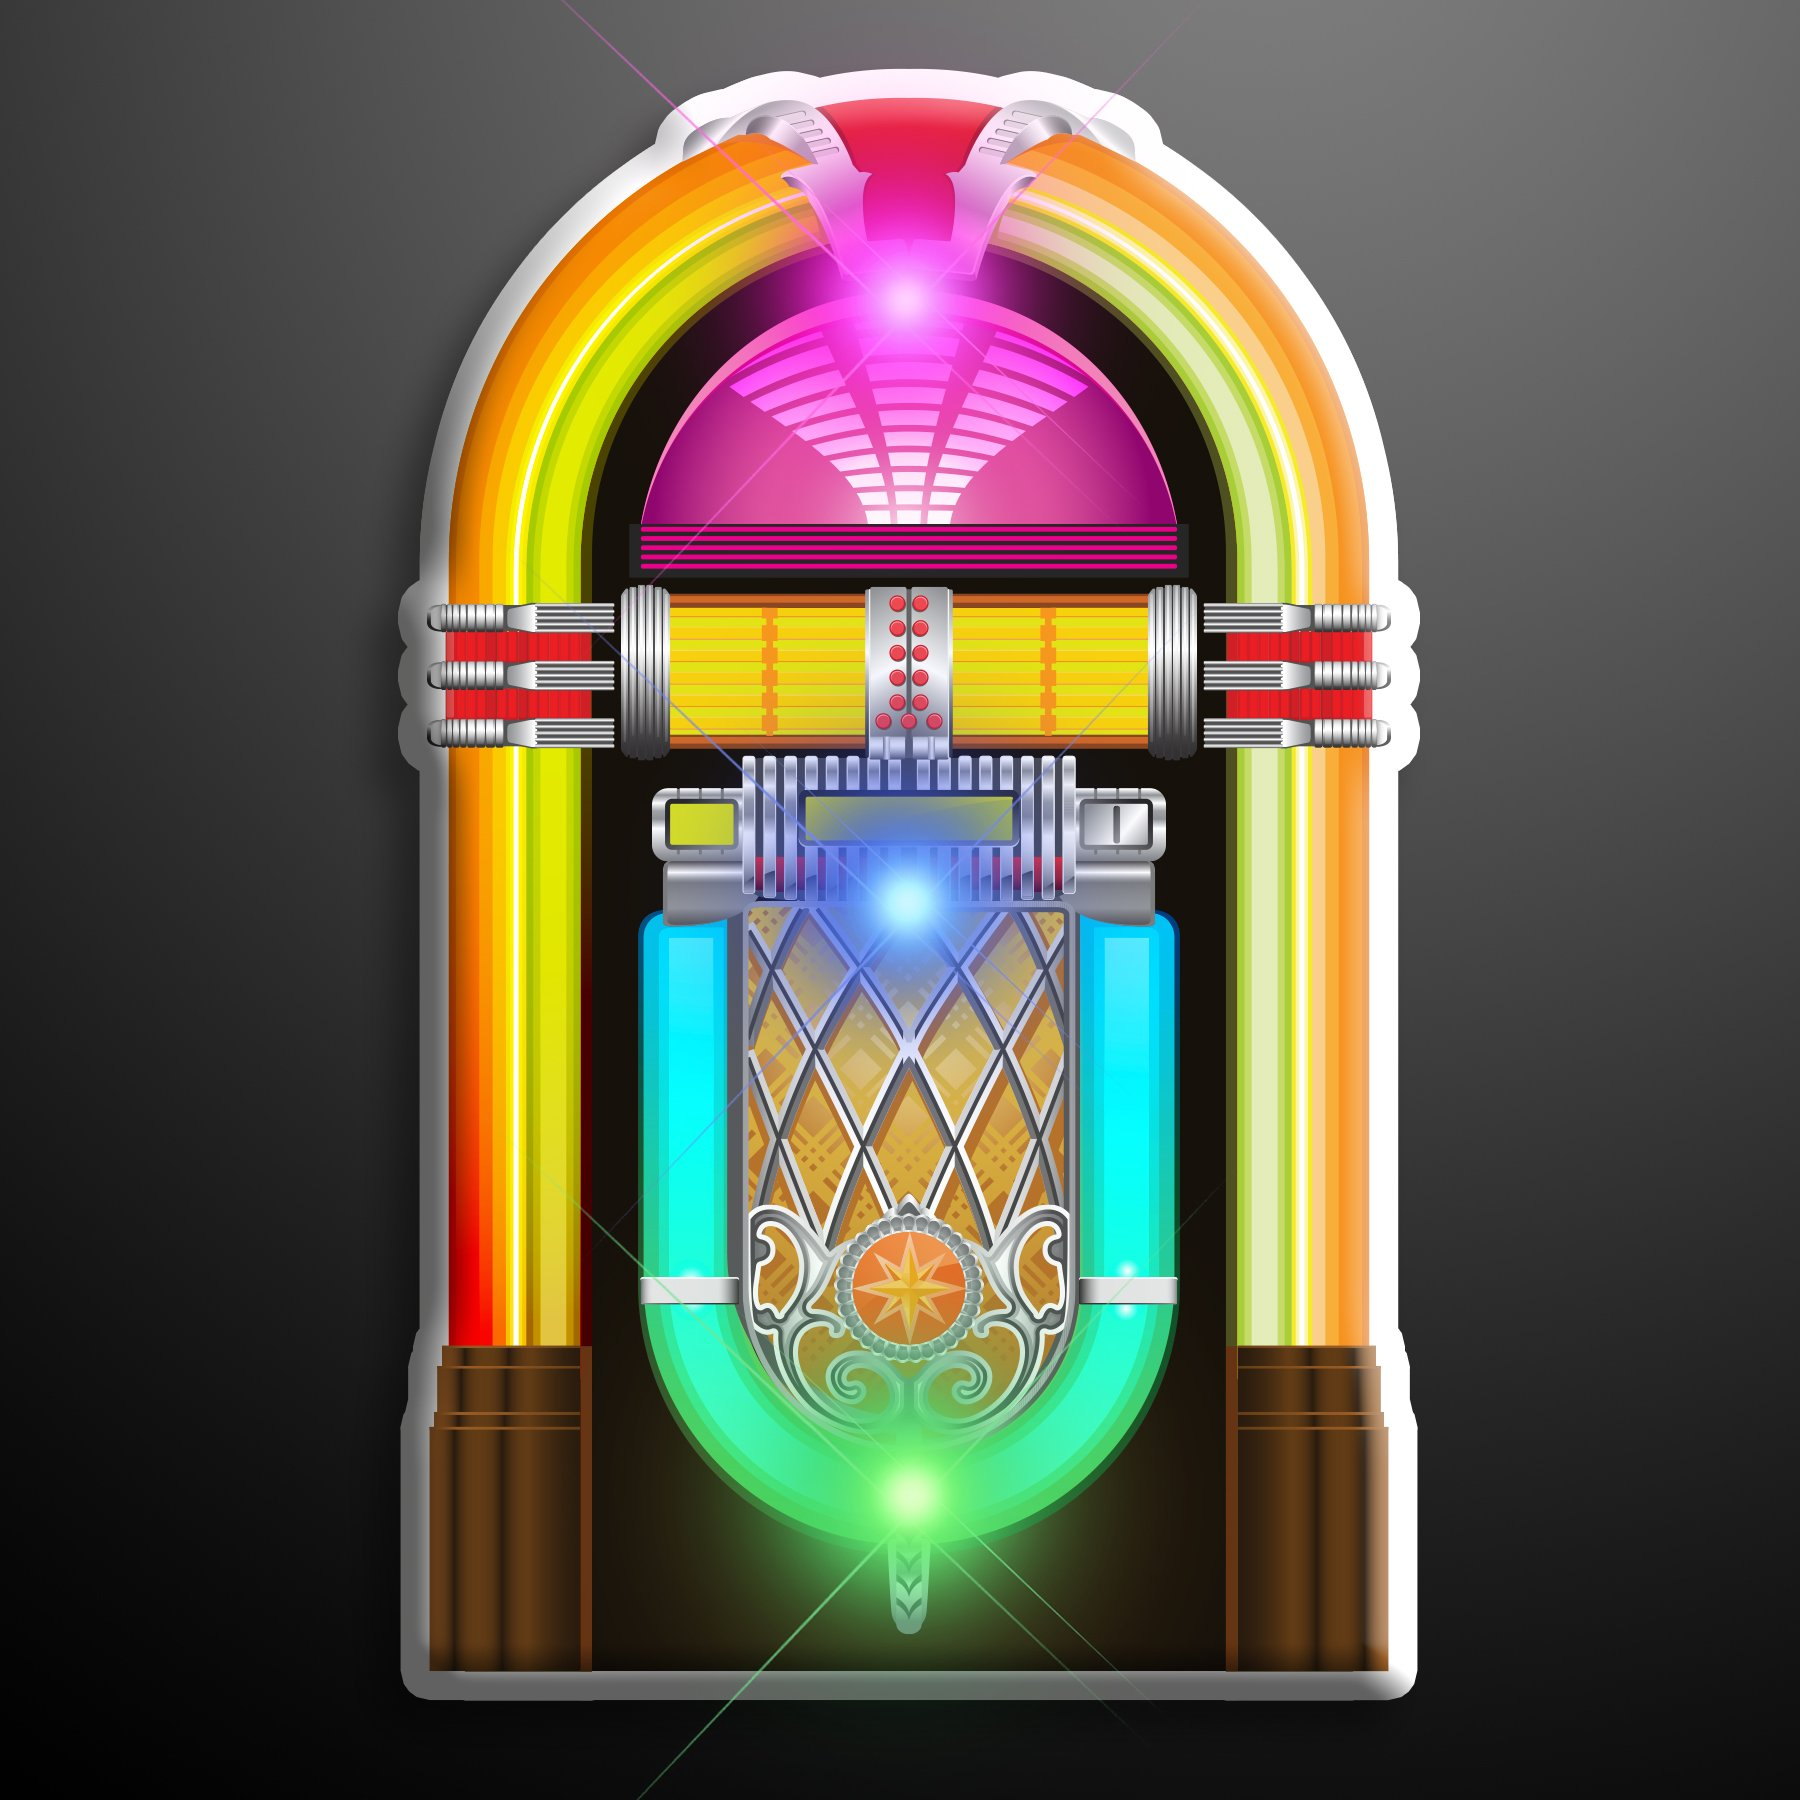 1950's Jukebox Light Up Flashing LED Lapel Pins (Set of 25)